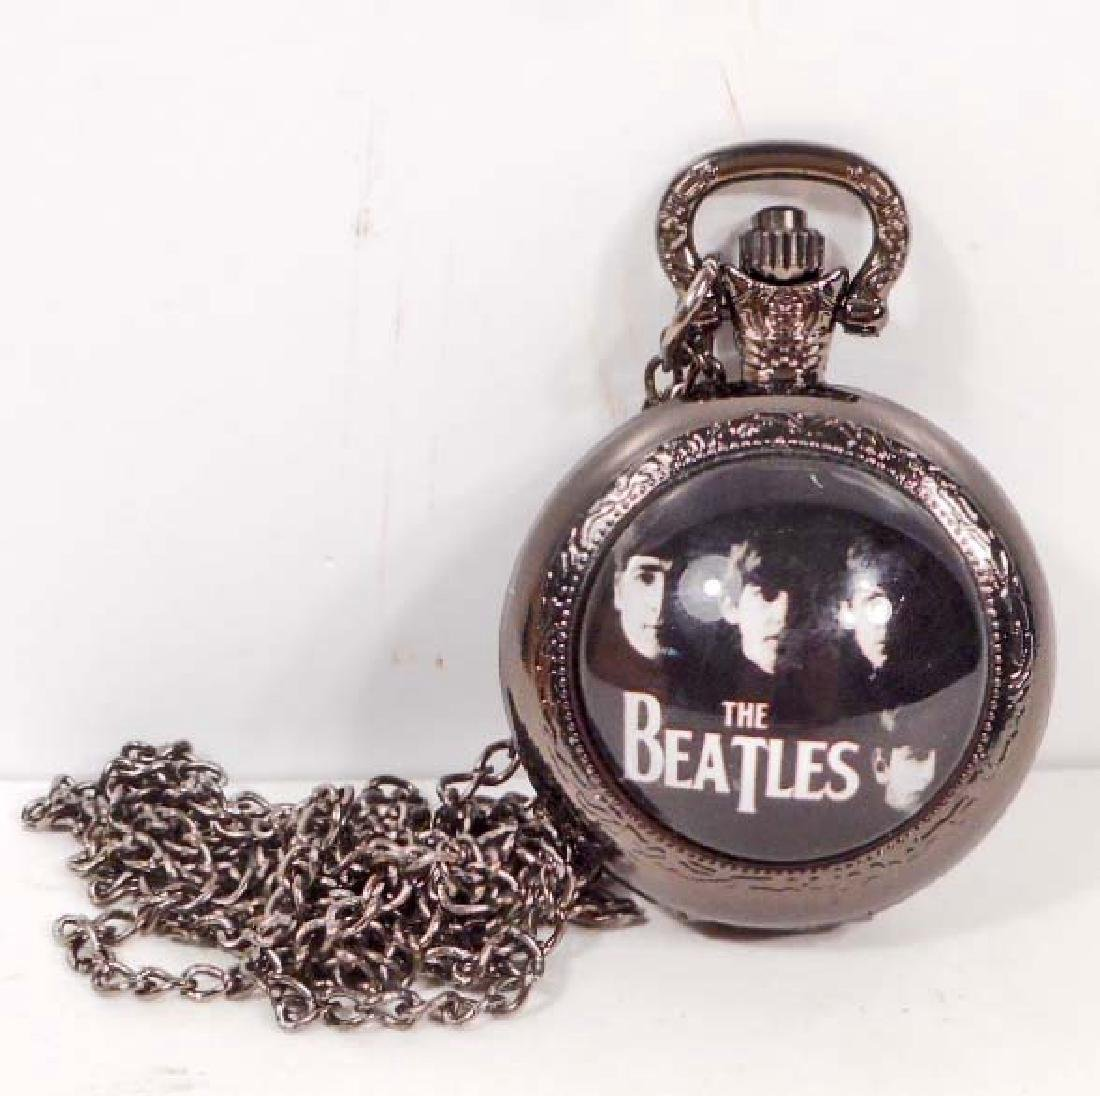 THE BEATLES POCKET WATCH W/ CHAIN